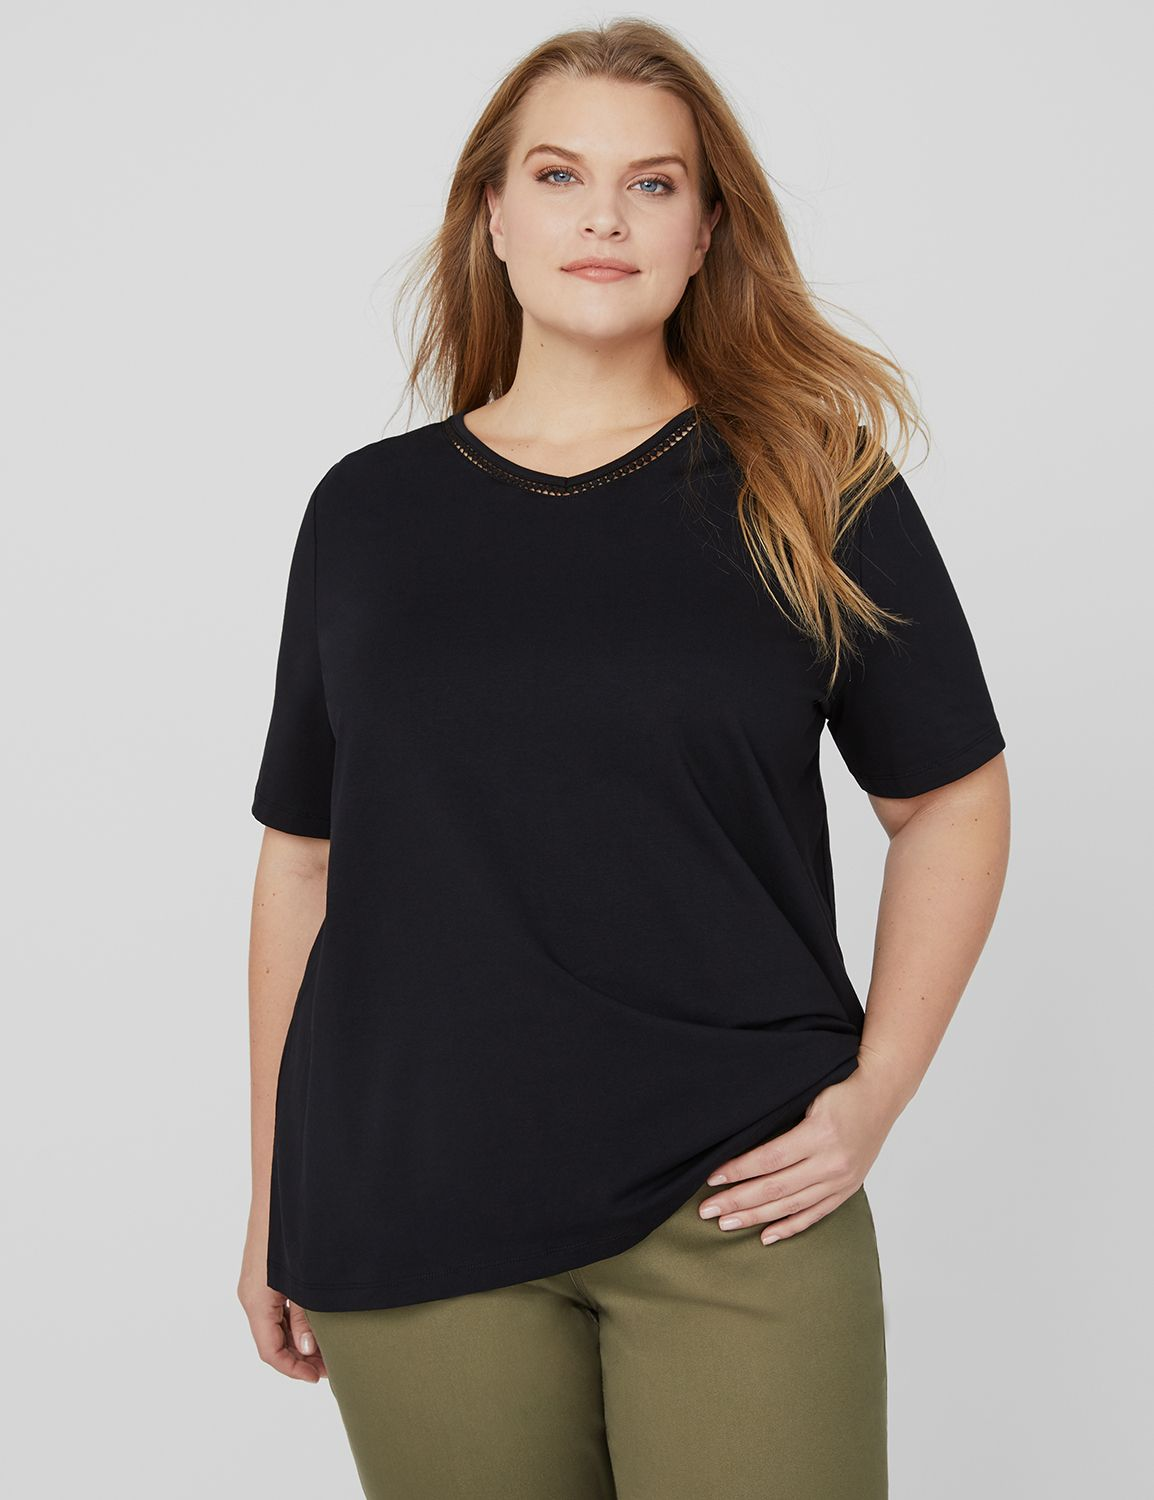 Suprema Lavish Tee 1087747 SS Basic Vneck with trim- S MP-300101140